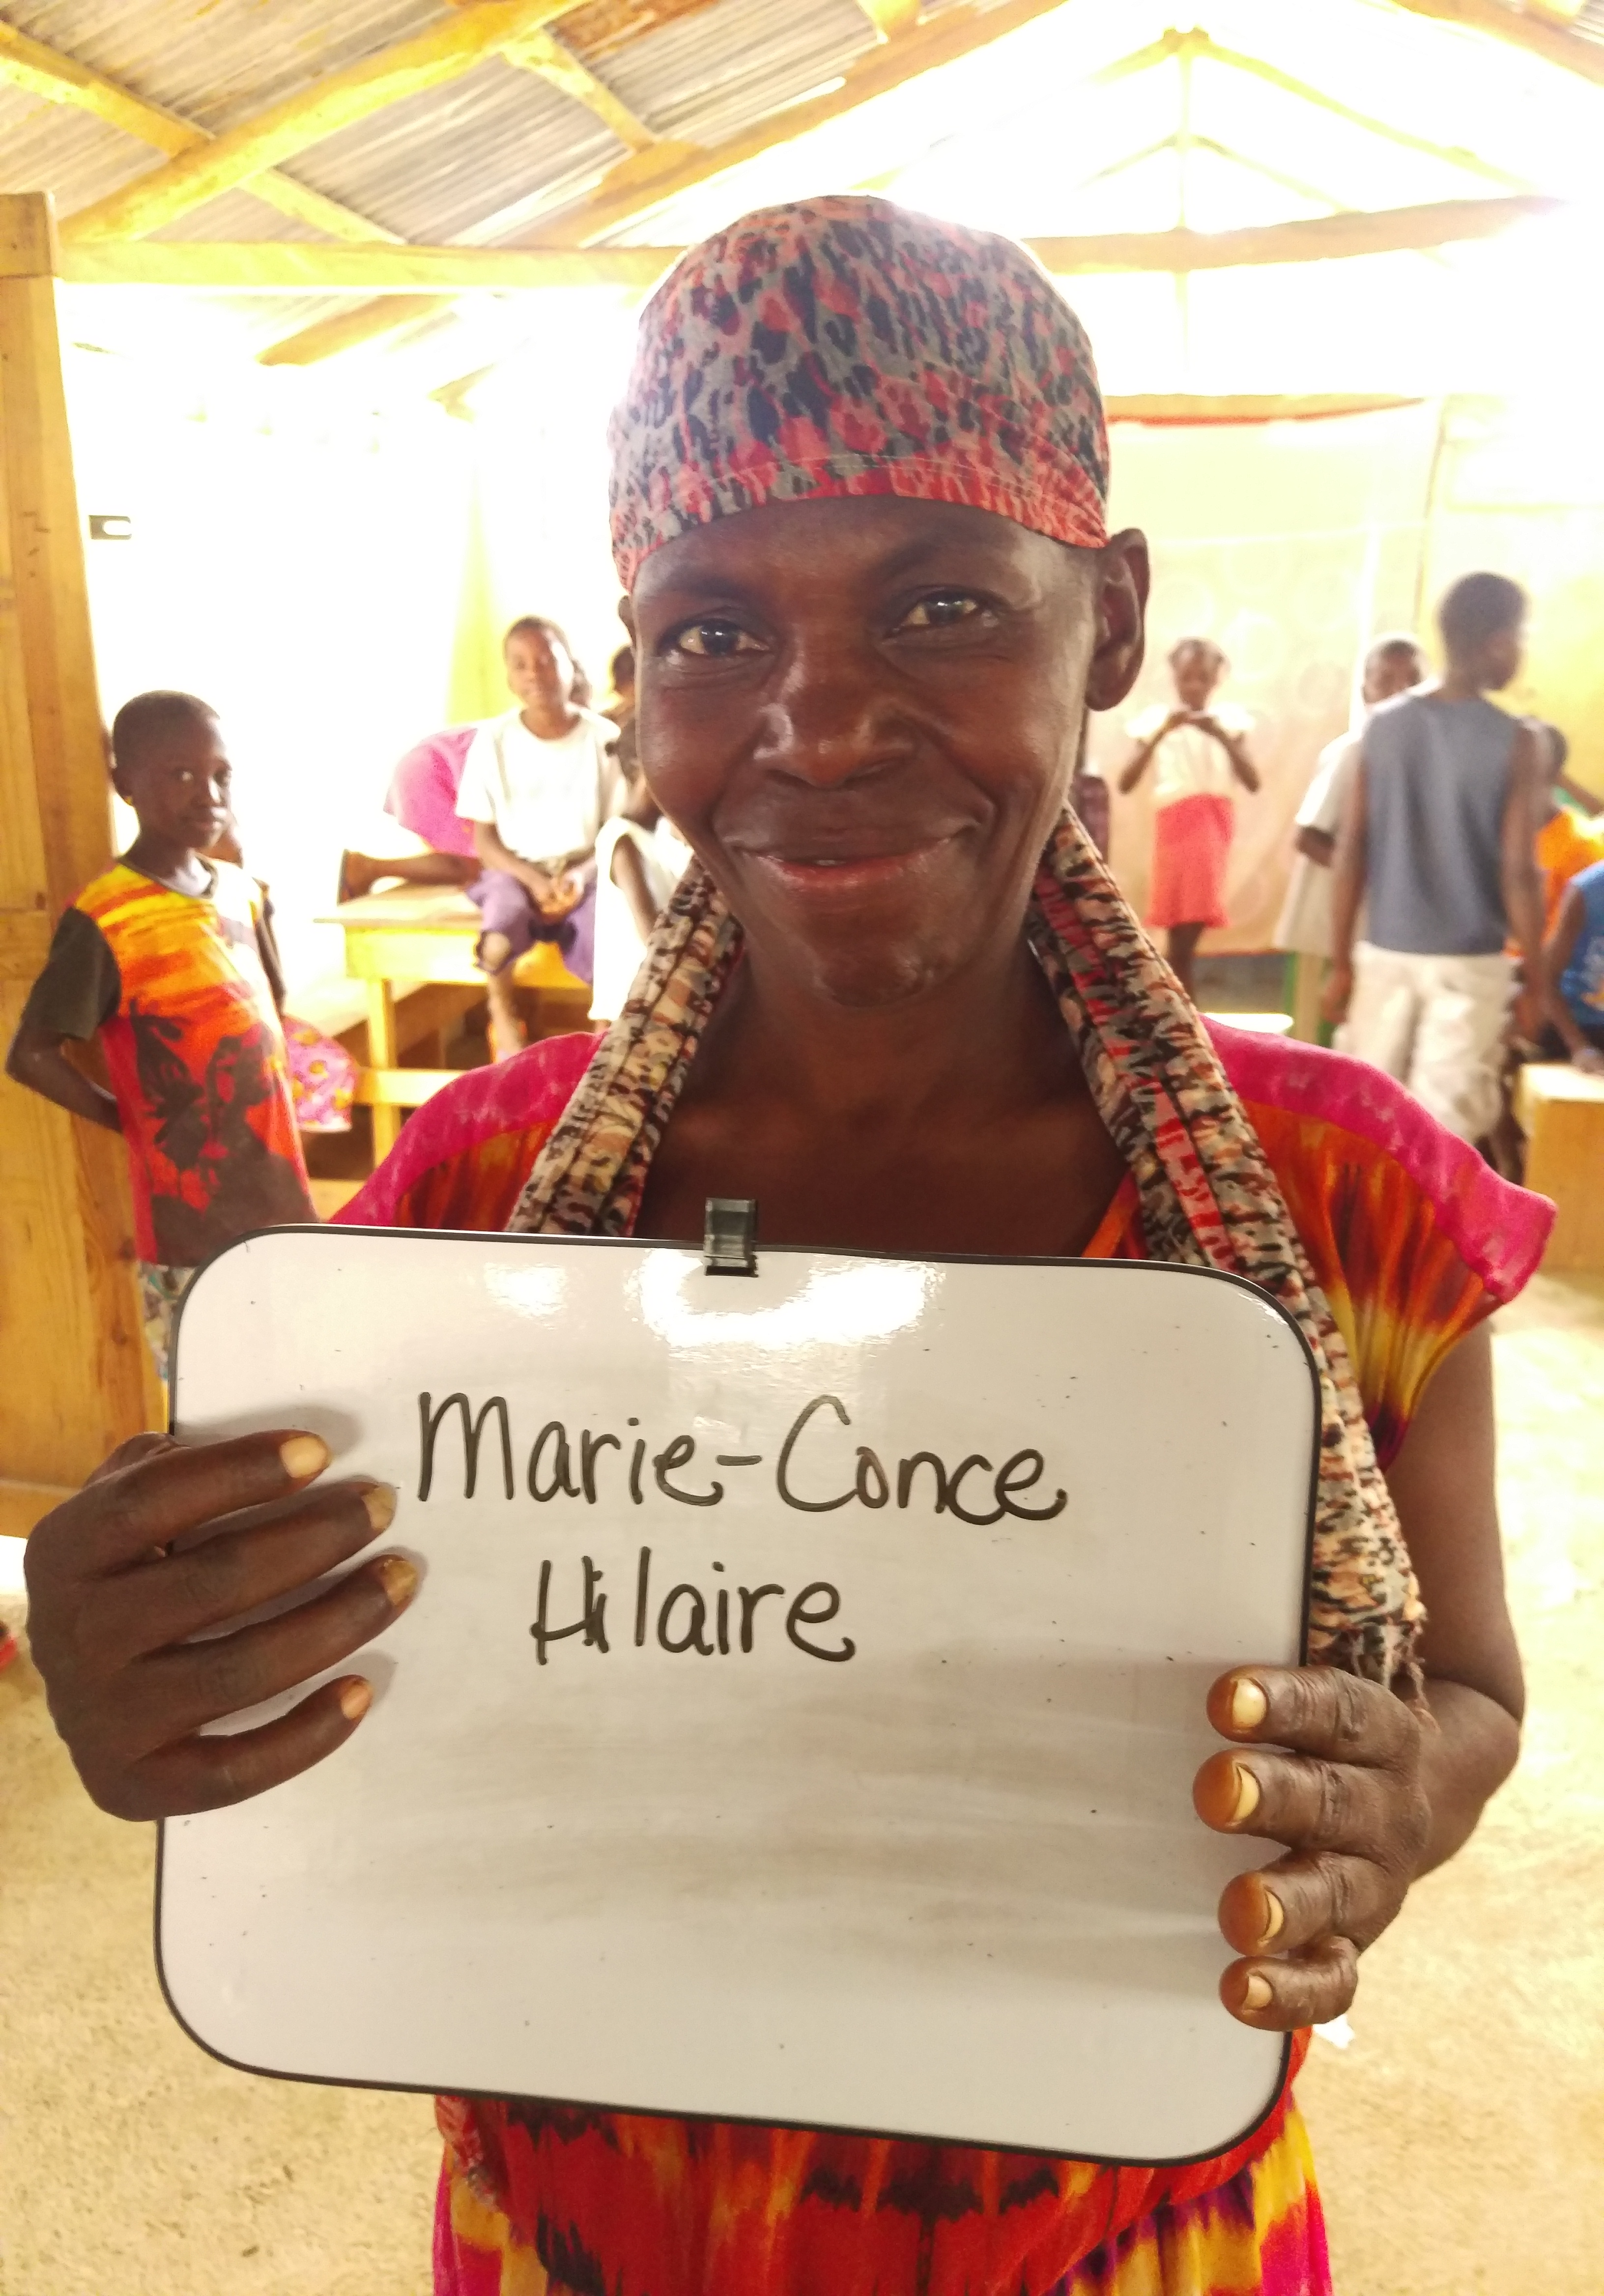 Mari Conse is the daughter of Brizali. She is mentally handicapped and not capable of carrying for herself or her mother. We are building a home down the road from the children's home because the IBESR (Haitian government office) told us we cannot have adults staying at the children's home. Sponsorship for her will go to provide food, laundry service, and any medical/dental help she needs.